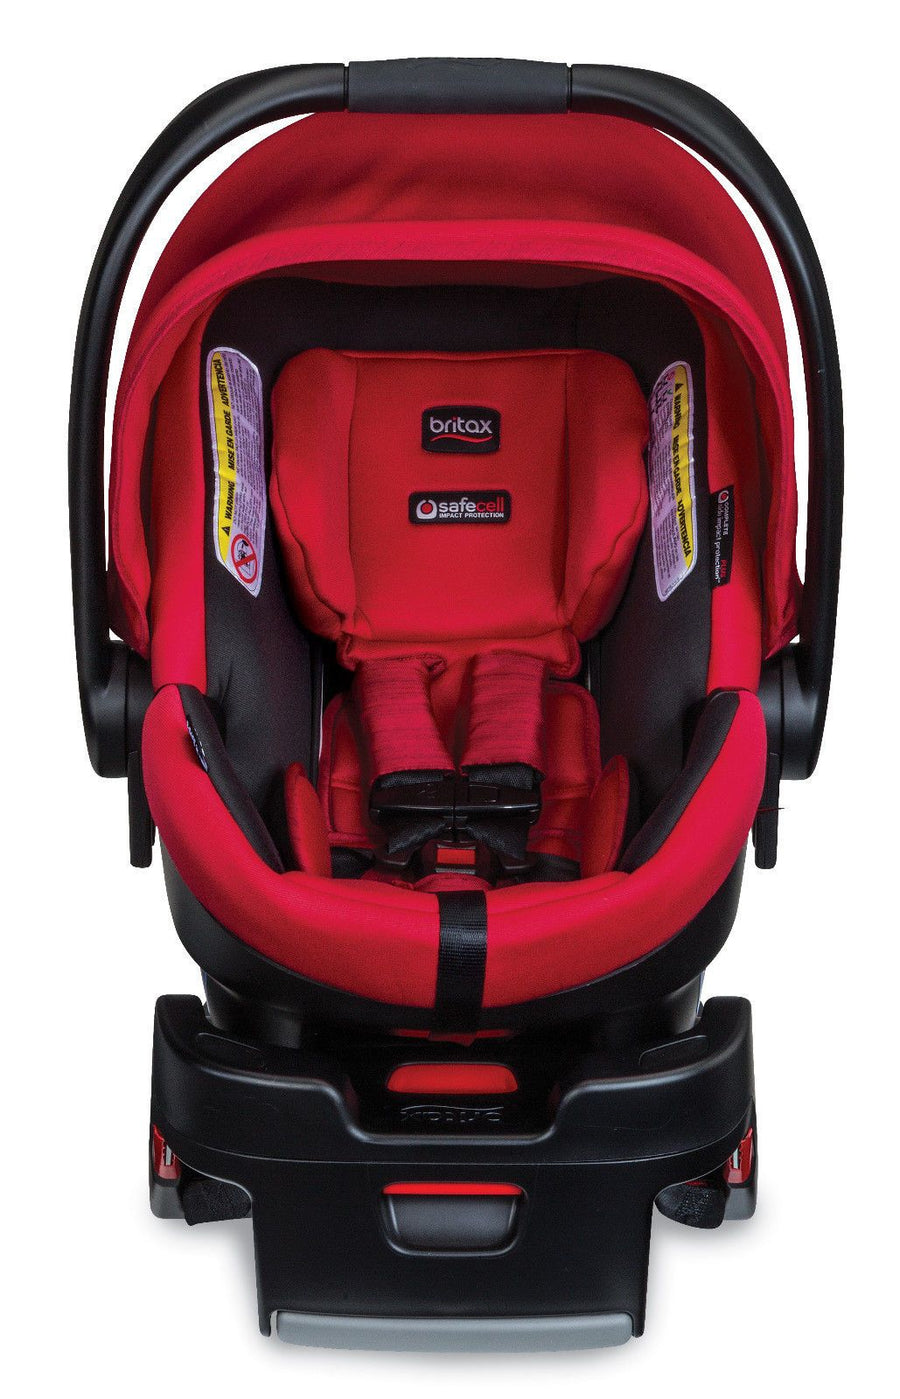 BRITAX SILLA DE CARRO ELITE RED PEPPER